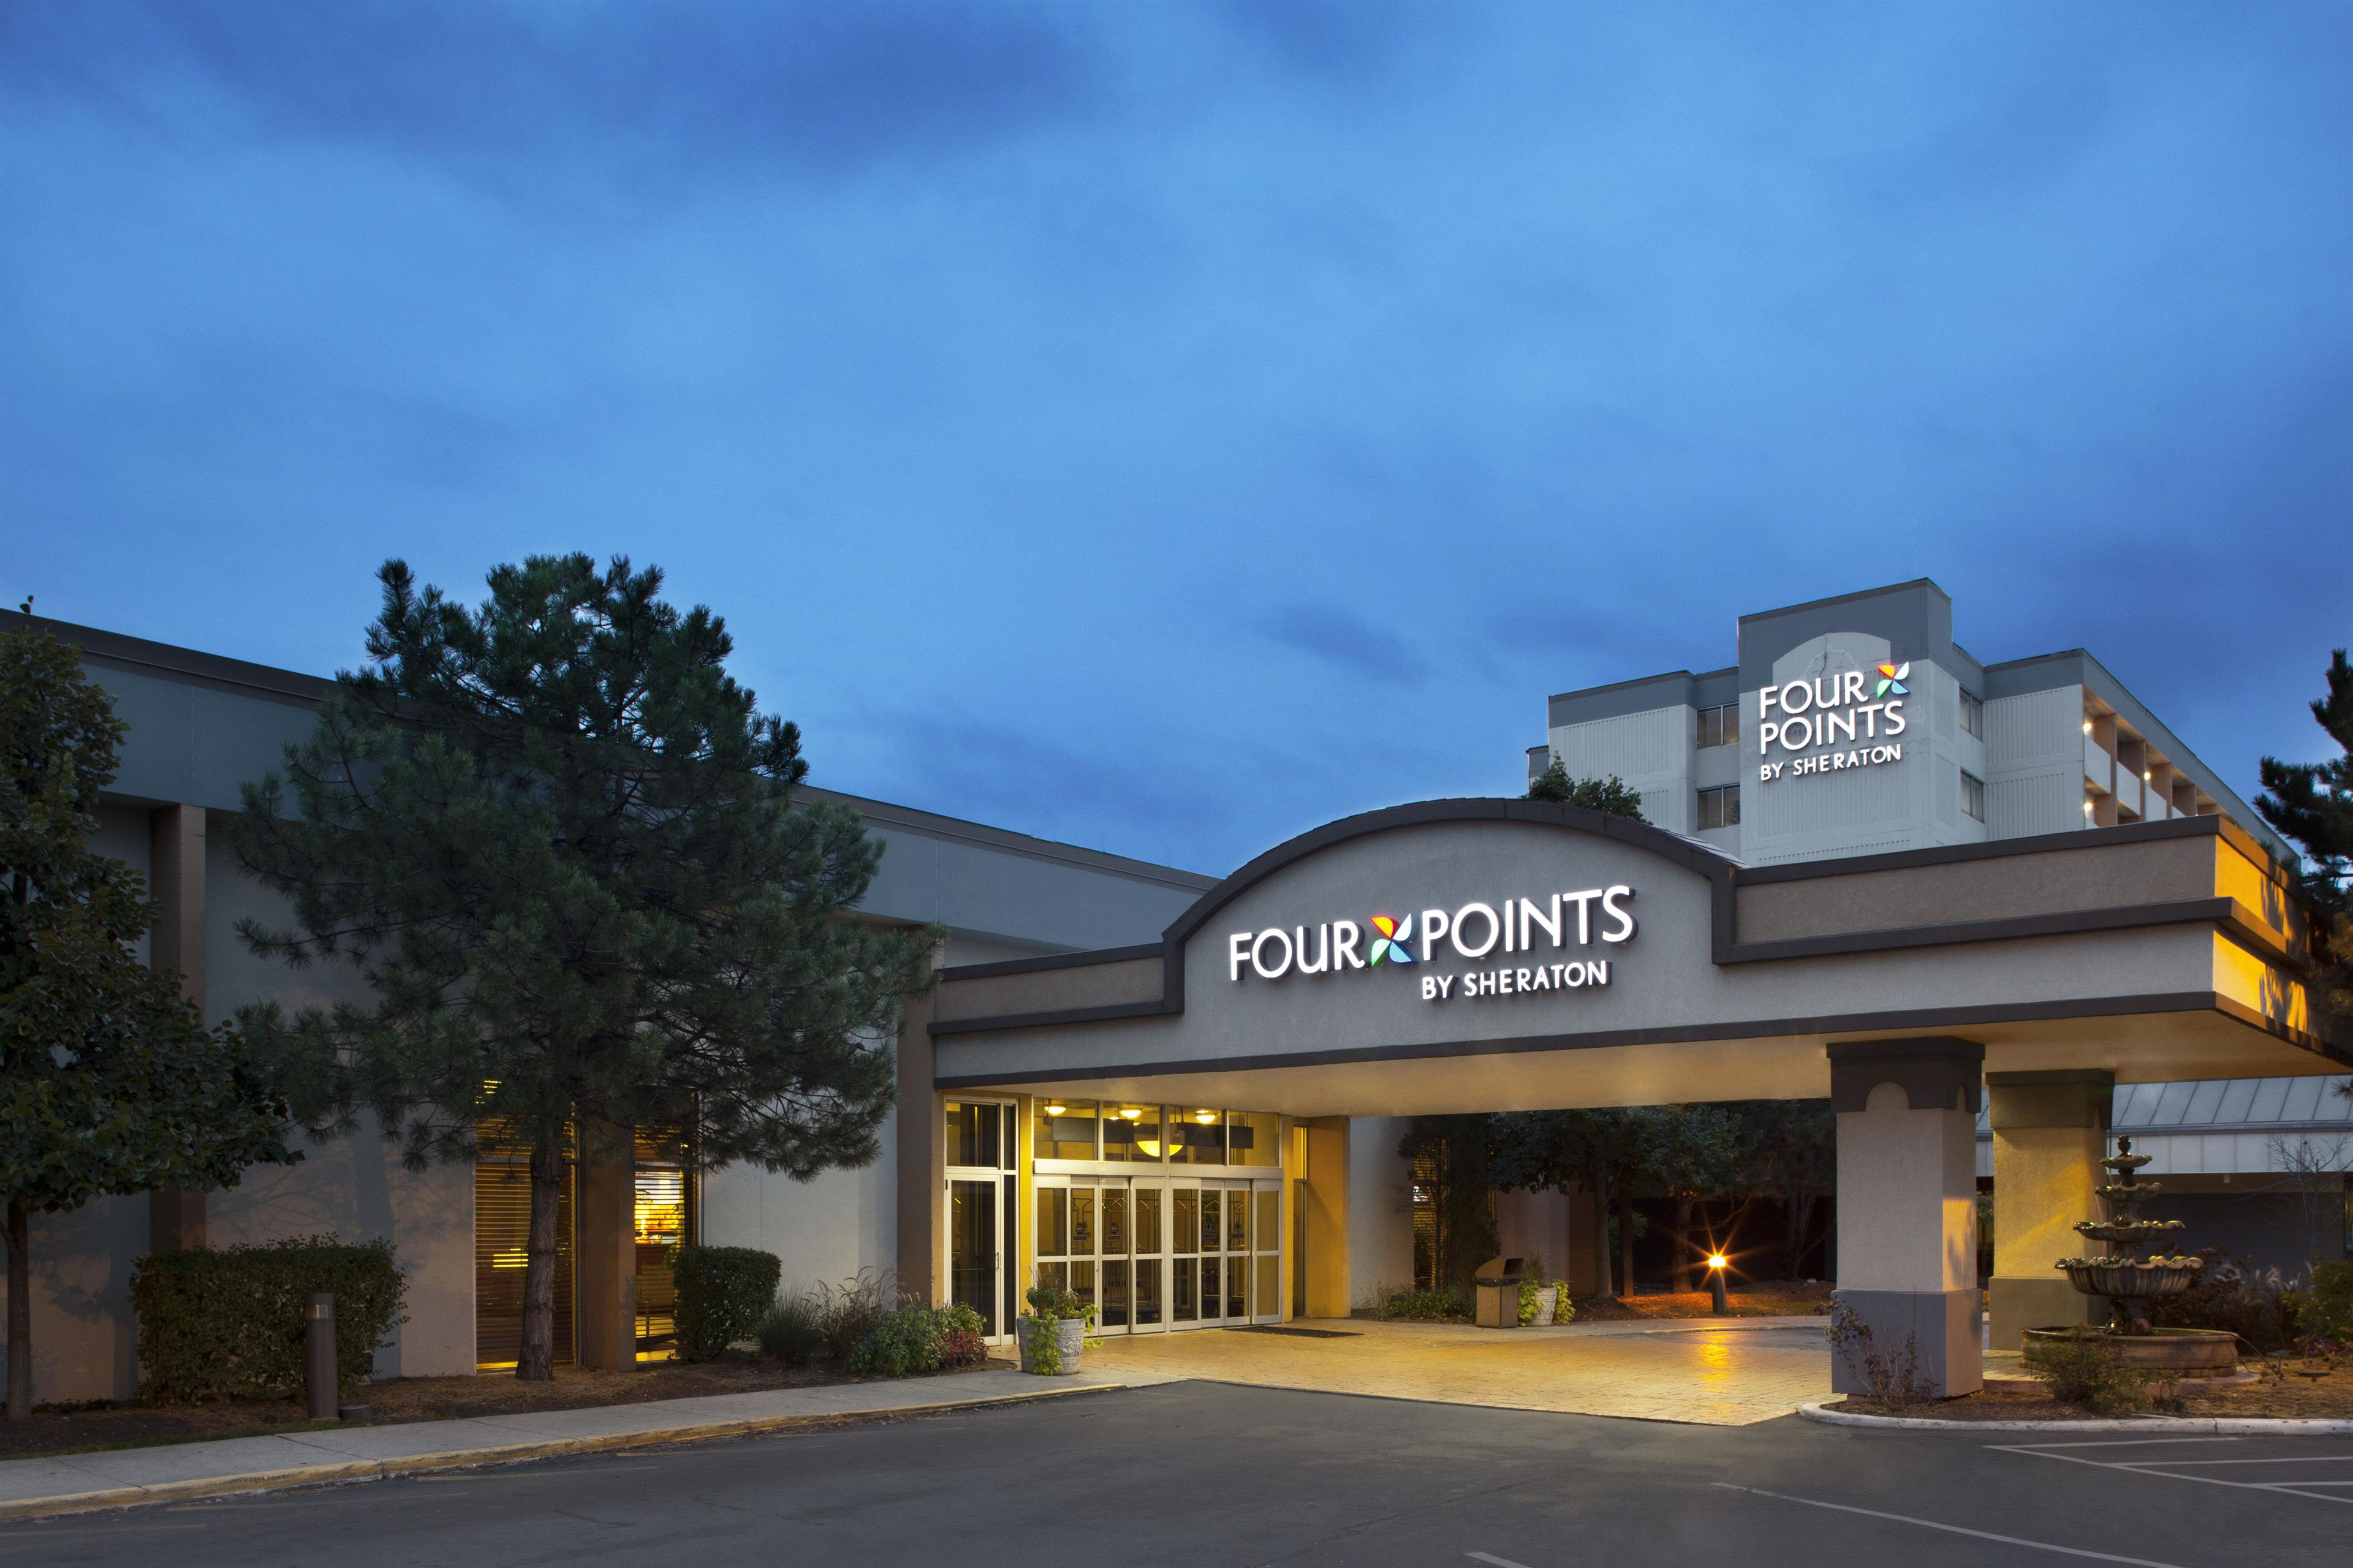 Four Points by Sheraton Chicago O'Hare Airport image 0